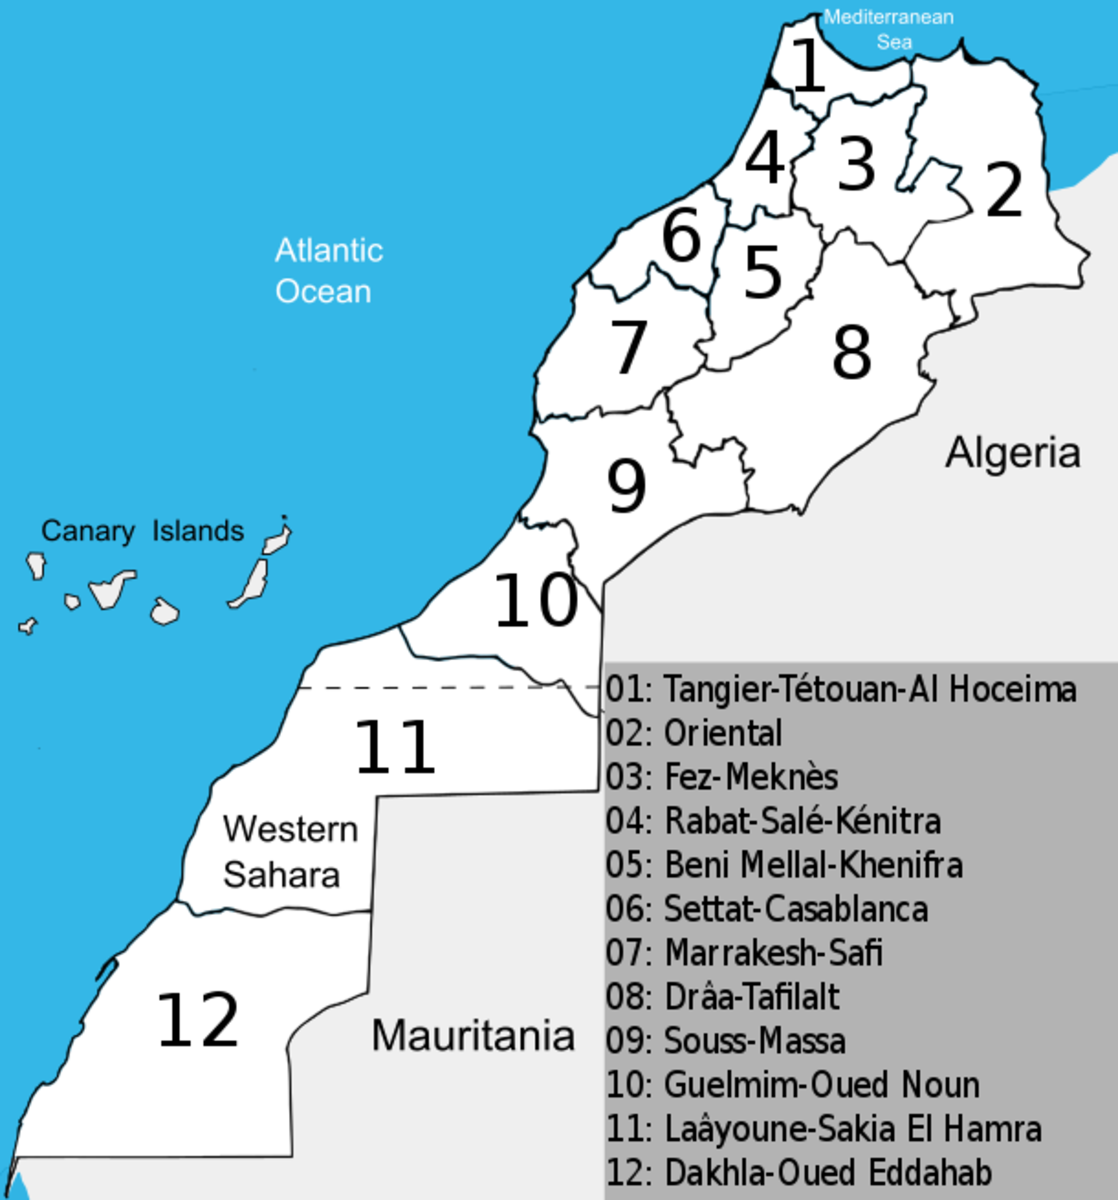 Regional map of Morocco by Xerxes1337. The two southmost provinces comprise the Western Sahara, which is disputed territory.